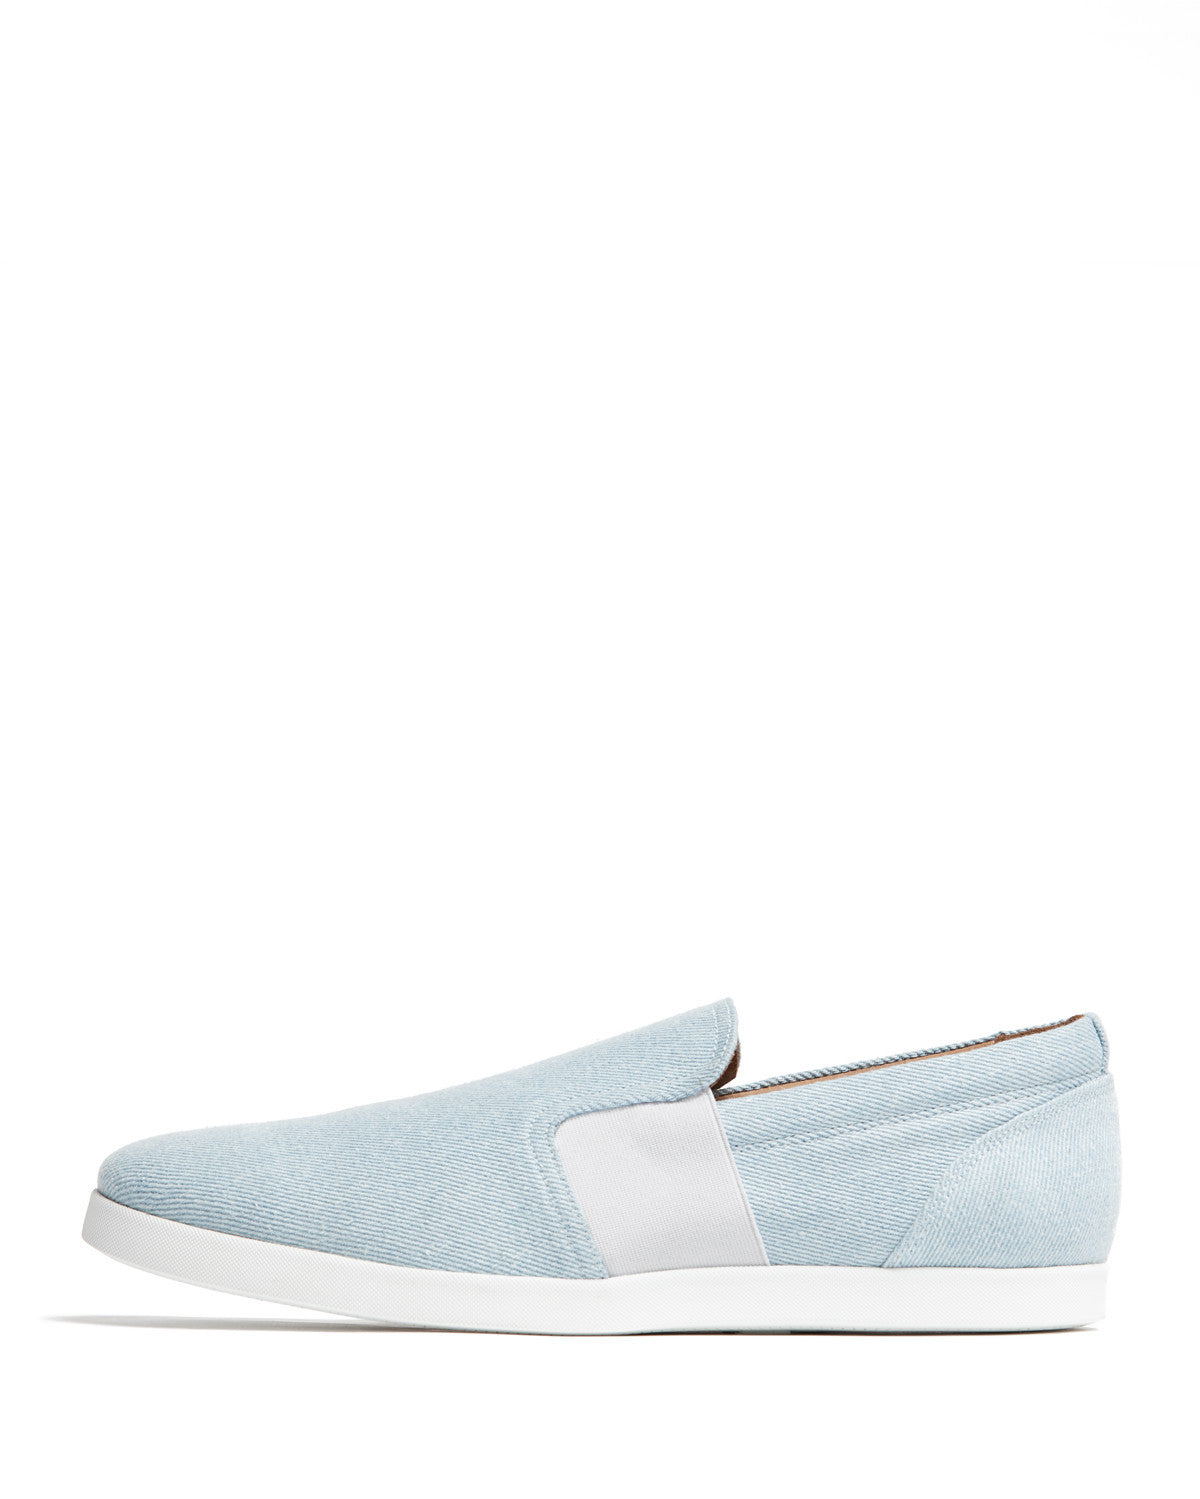 ATM Hampton Slip-On Sneaker